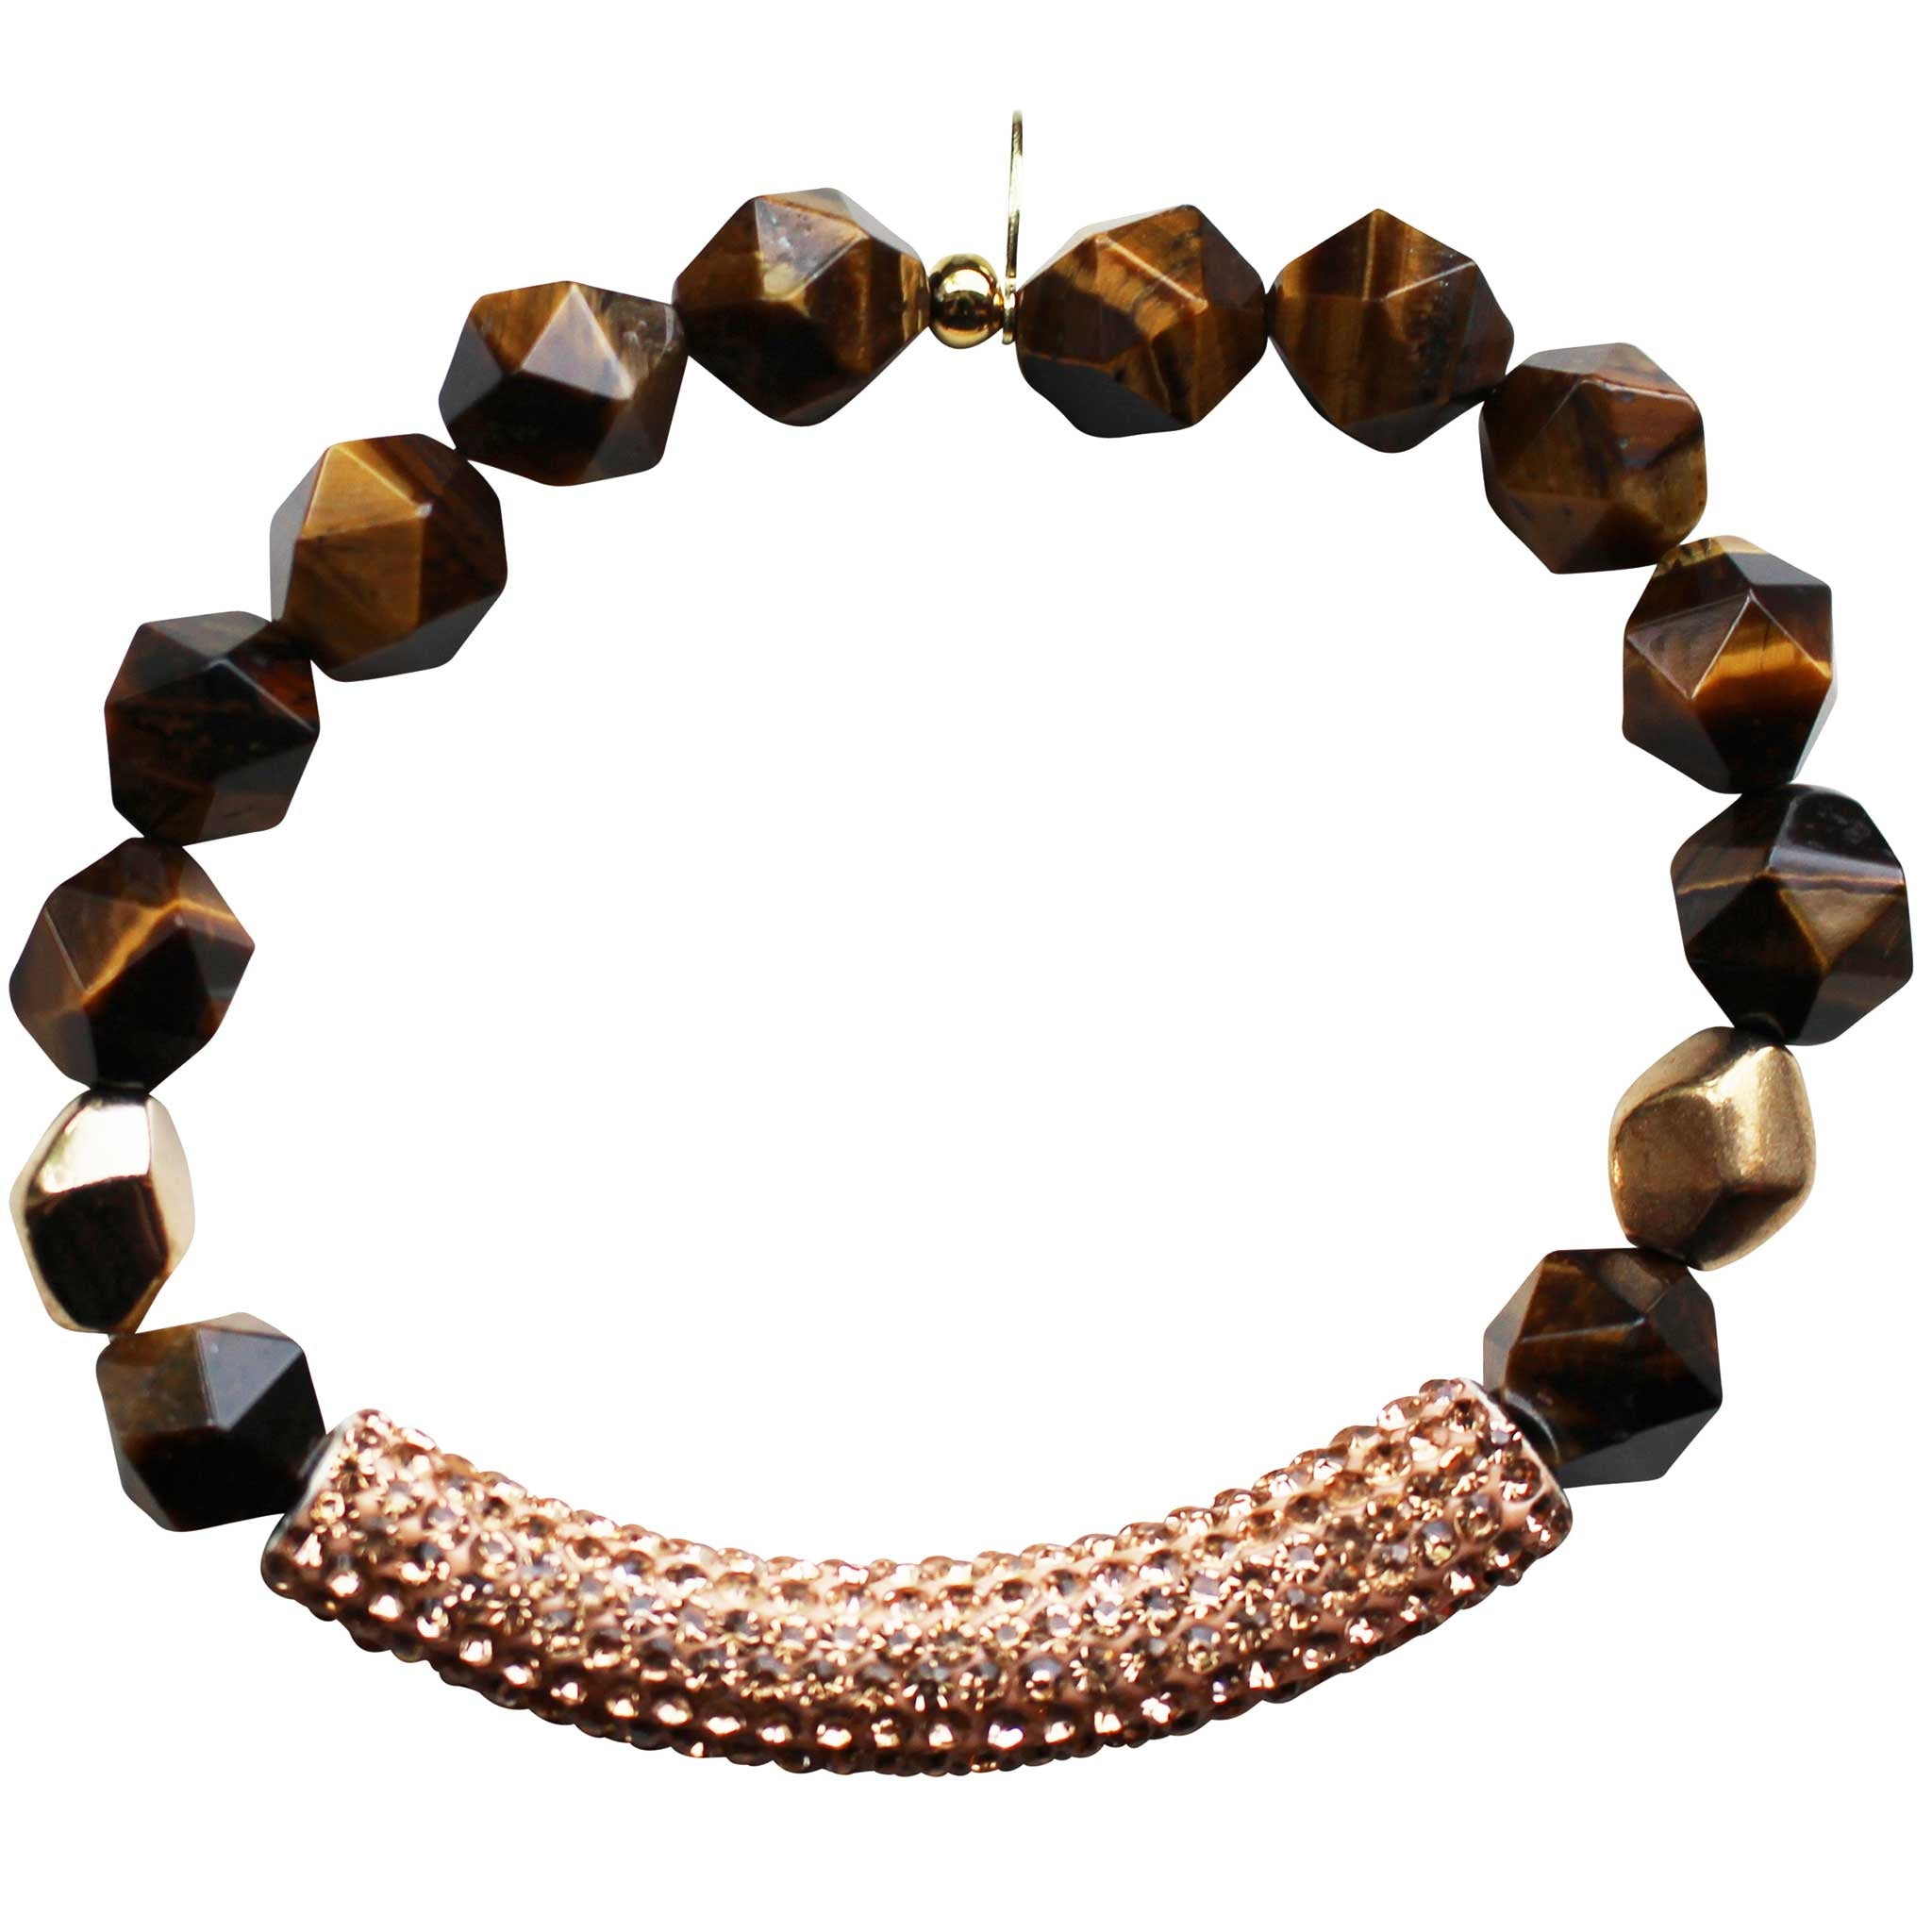 Beaded stretch bracelet with gold pave cubic zirconia (CZ) bar tigers eye and gold plated beads